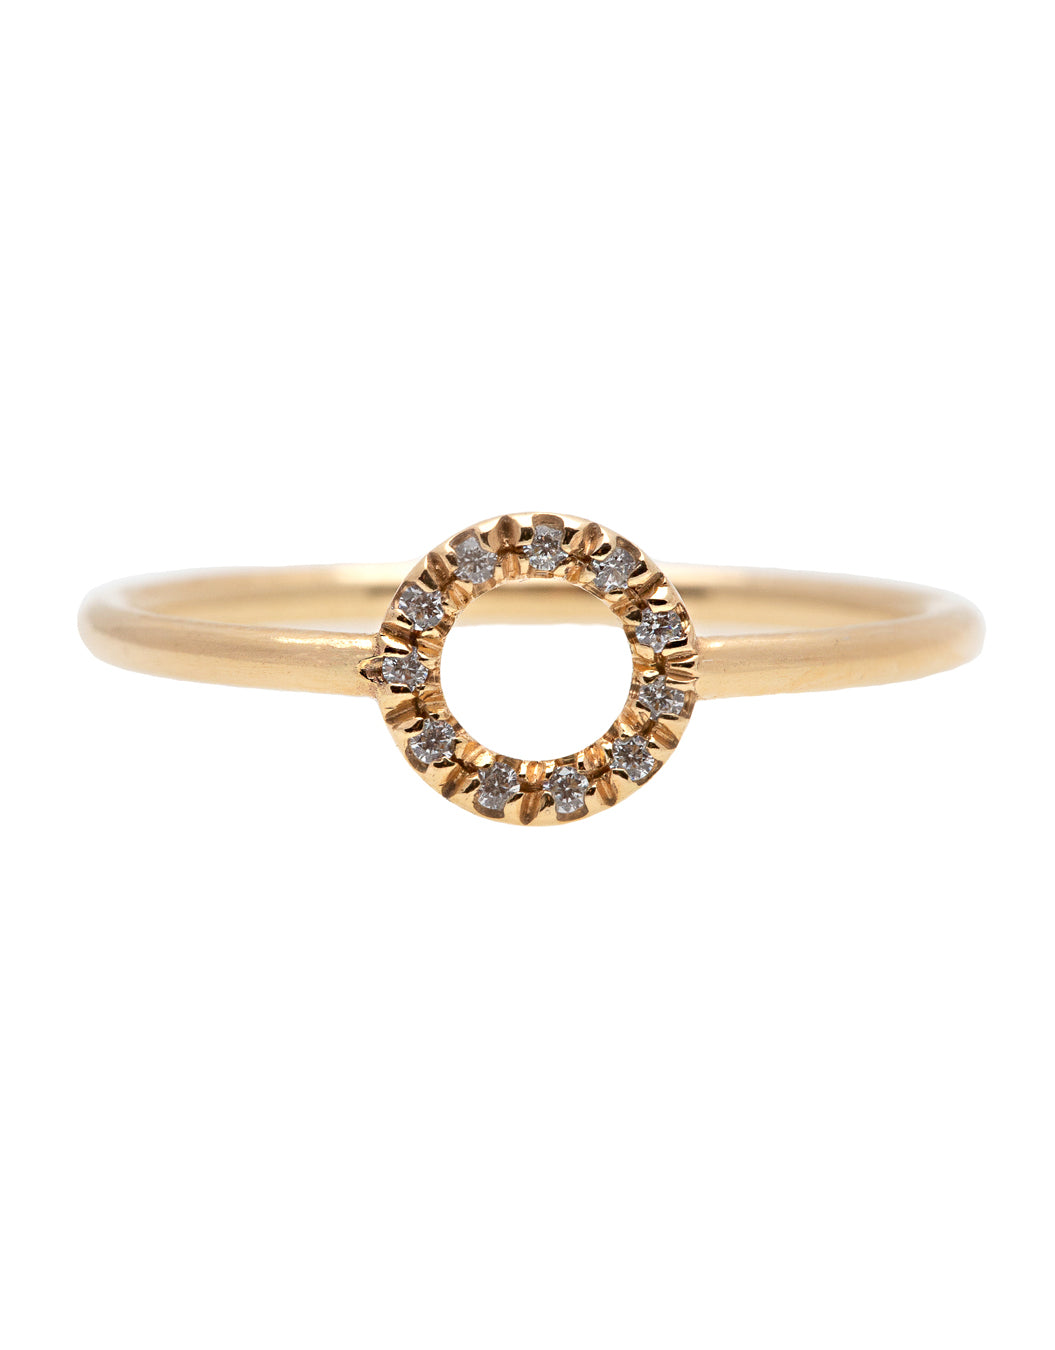 A dainty 14k yellow gold ring with a circle on top, set with brilliant cut white diamonds.